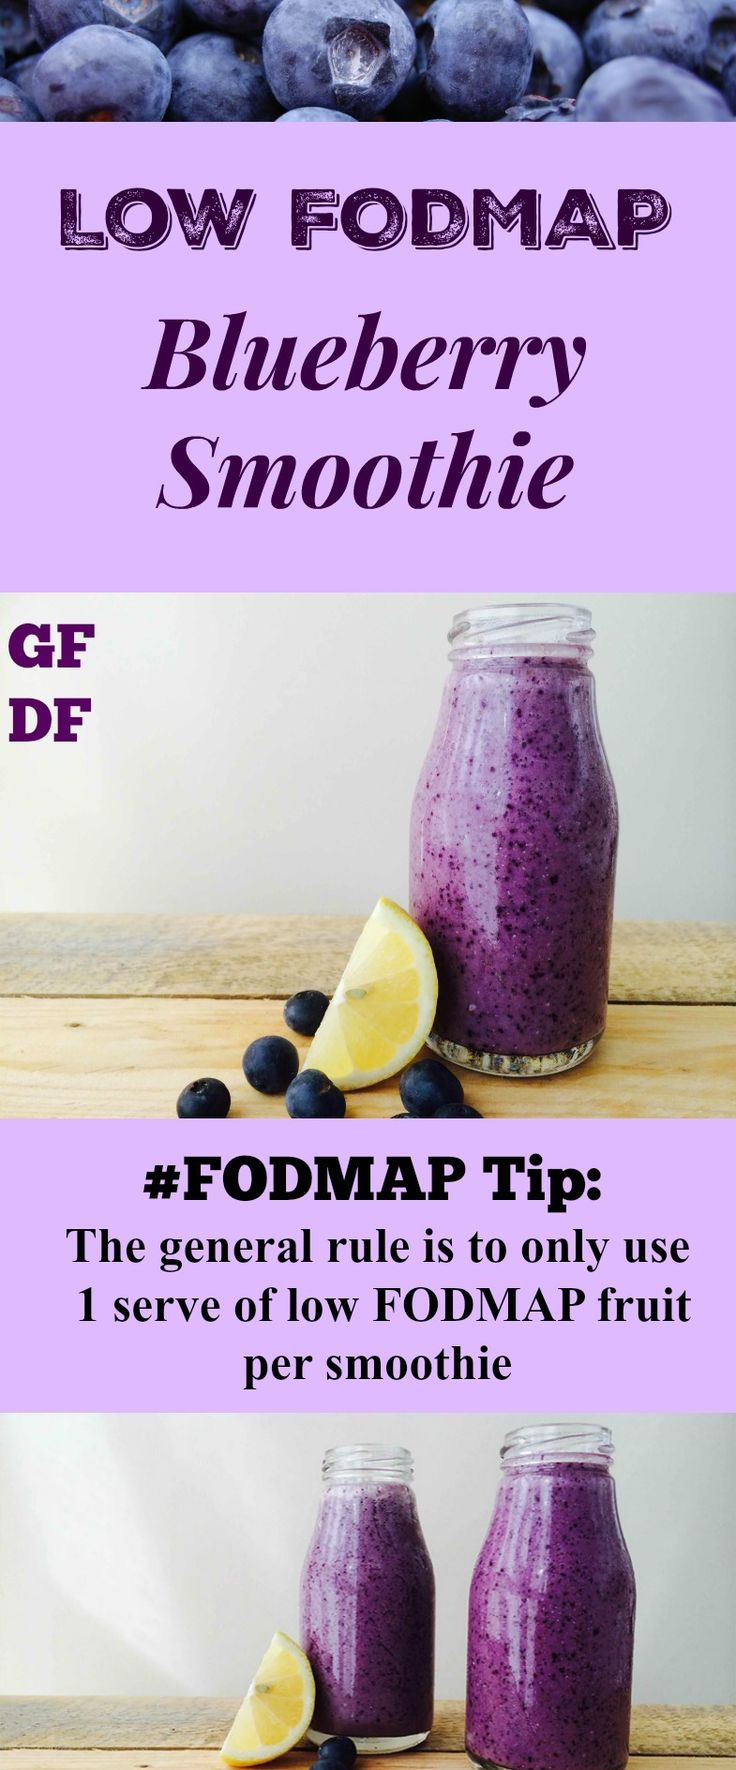 Looks amazing! Low #FODMAP Blueberry Smoothie via @ALittleBitYummy #IBS For more dietitian approved Low FODMAP recipes see here http://rmdietetic.com/category/low-fodmap-recipes/